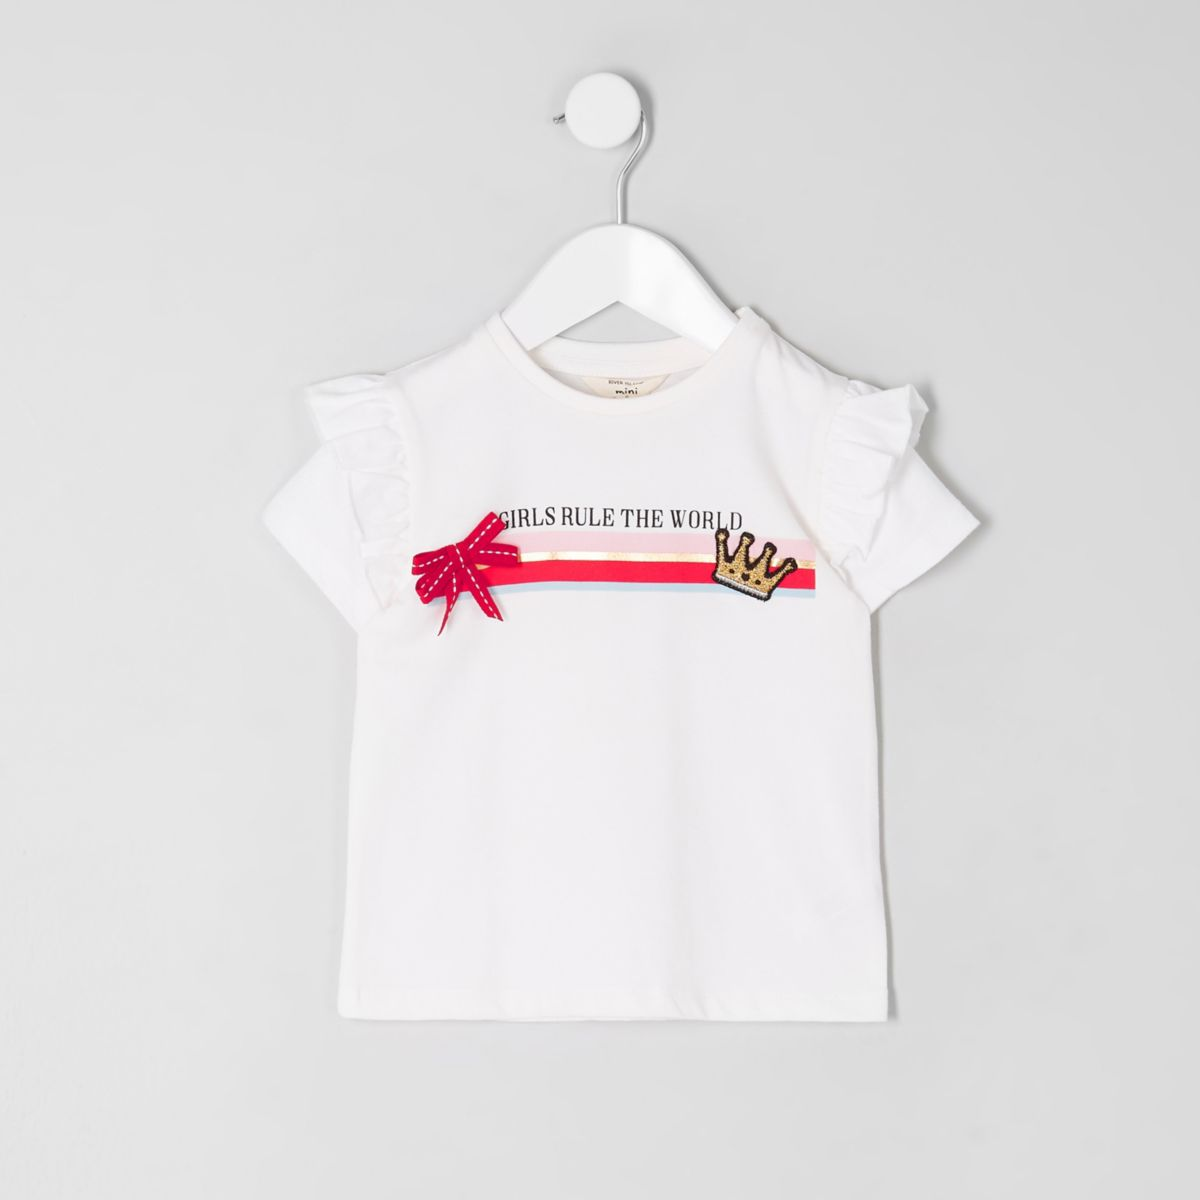 Mini girls 'rule the world' T-shirt